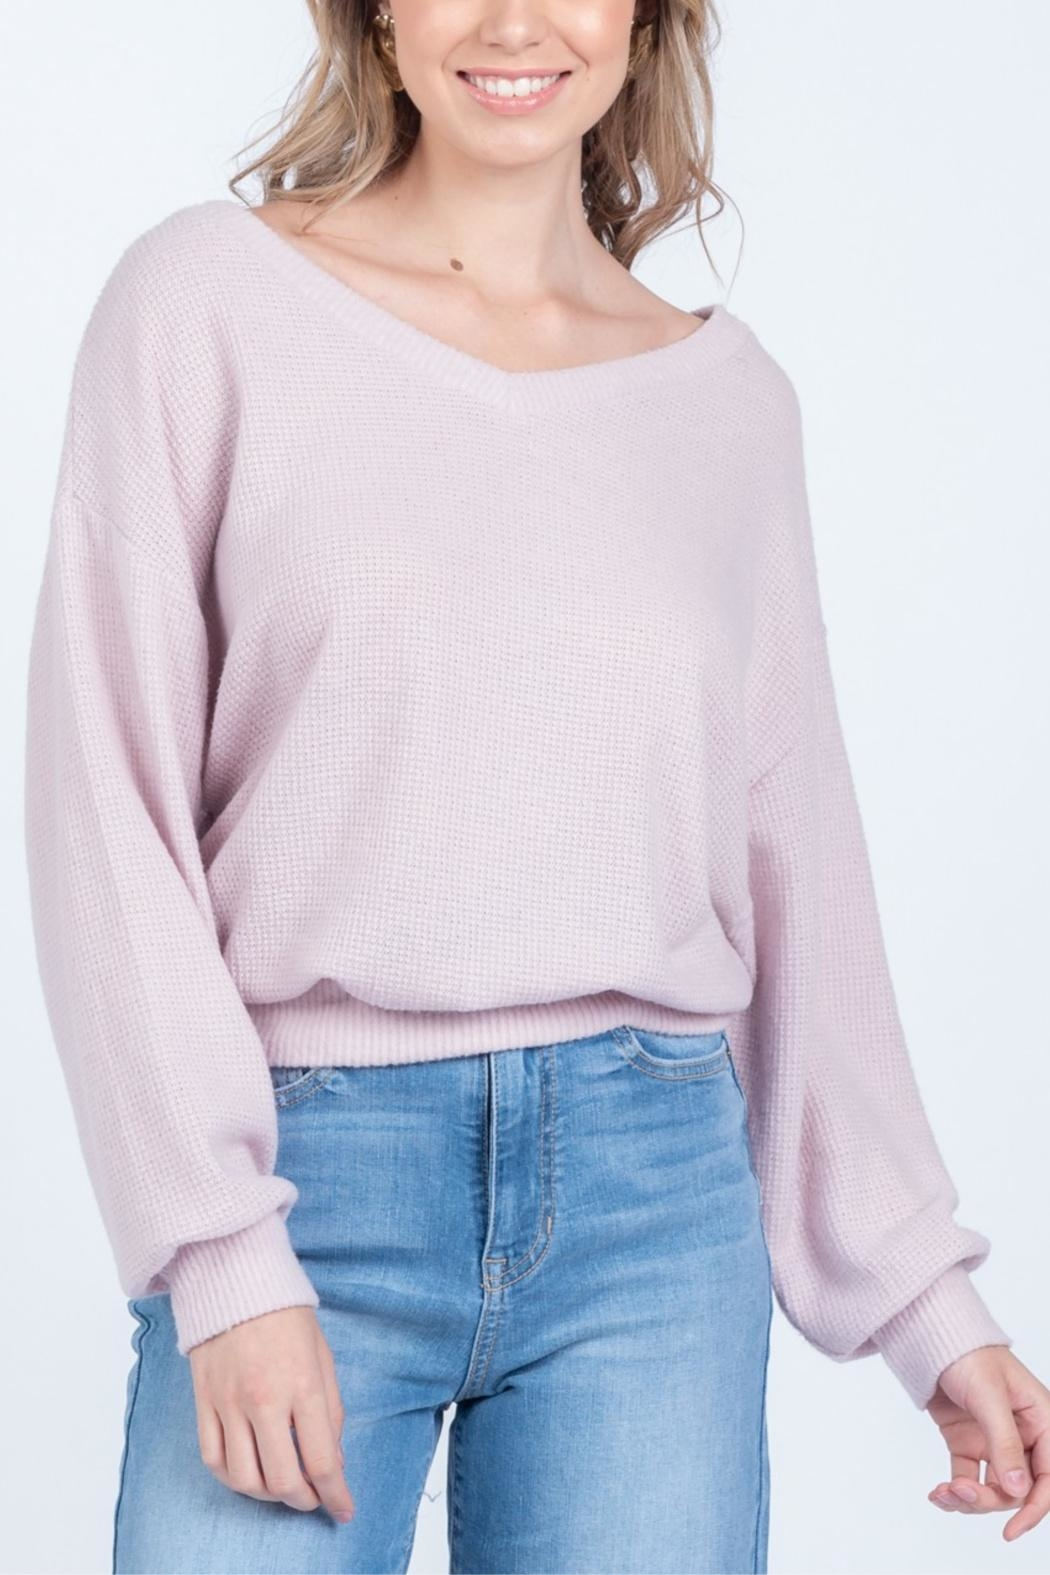 Everly Powder Sugar Waffle Top - Front Cropped Image